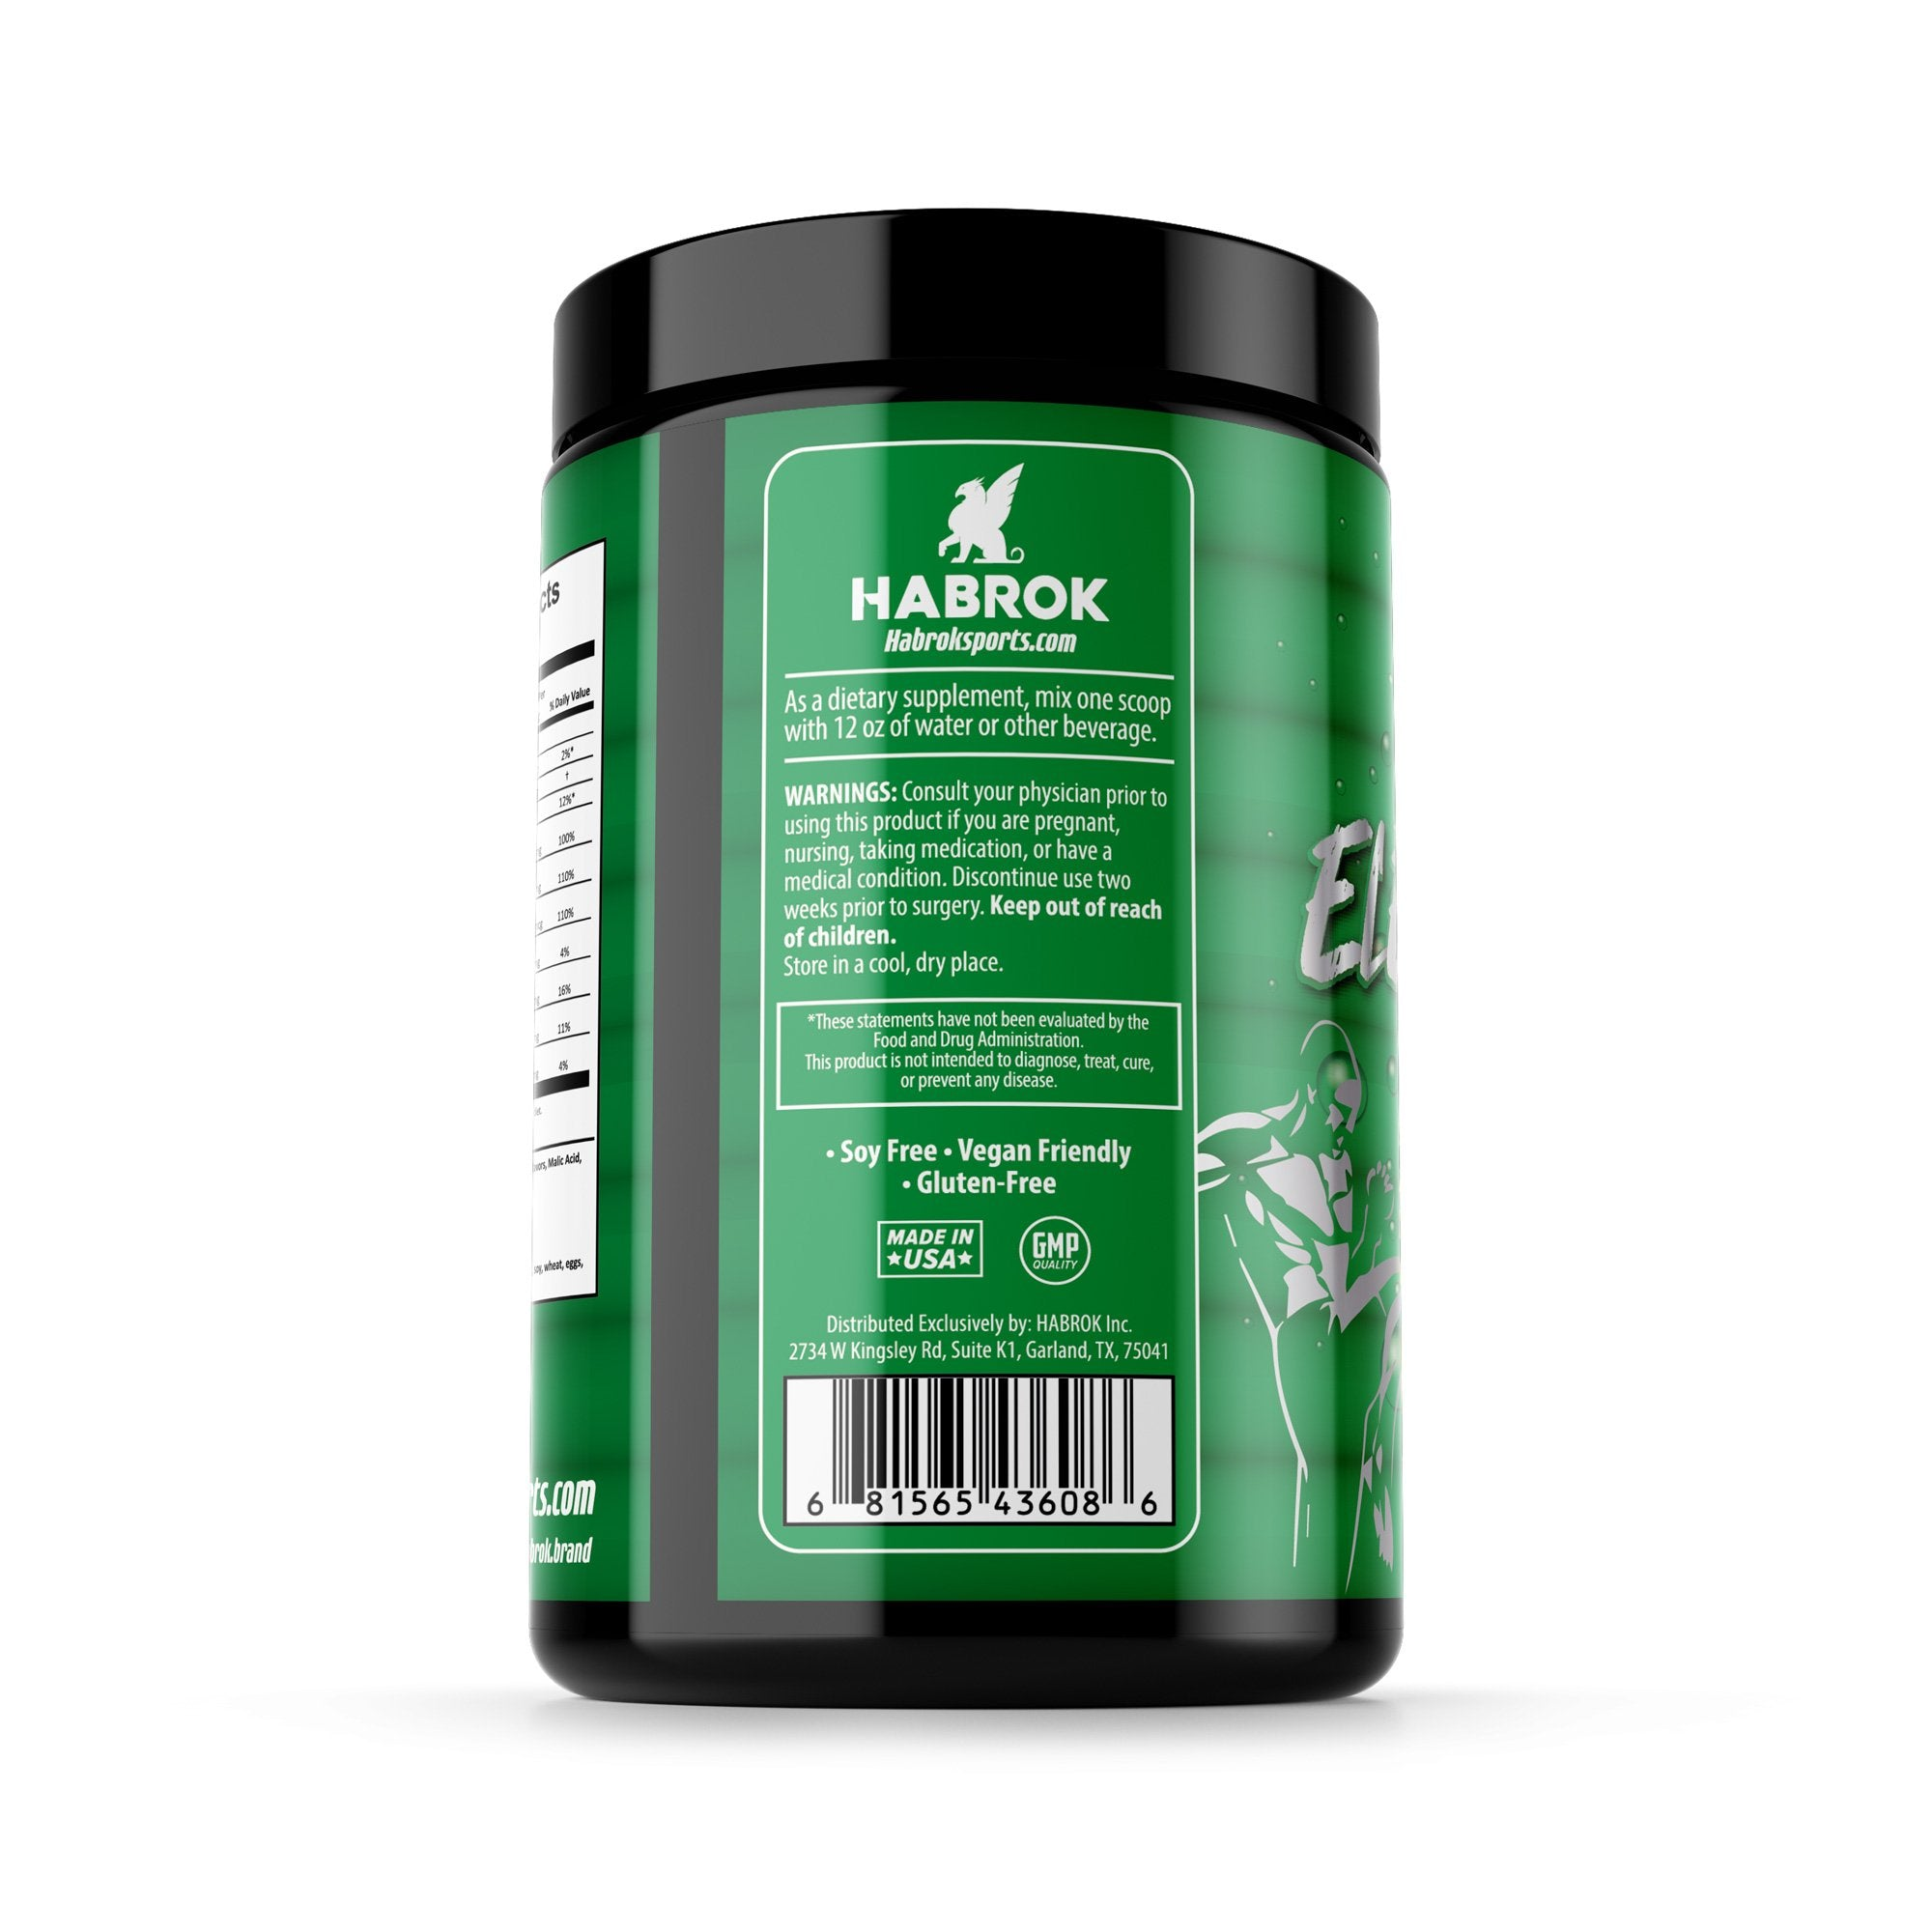 Habrok Nutritions Default Electrolytes Plus Vitamin C - Lemon | Pre or Post Workout | Habrok Electrolytes Plus Vitamin C - Lemon | Habrok |  MMA | Nutrition | BJJ